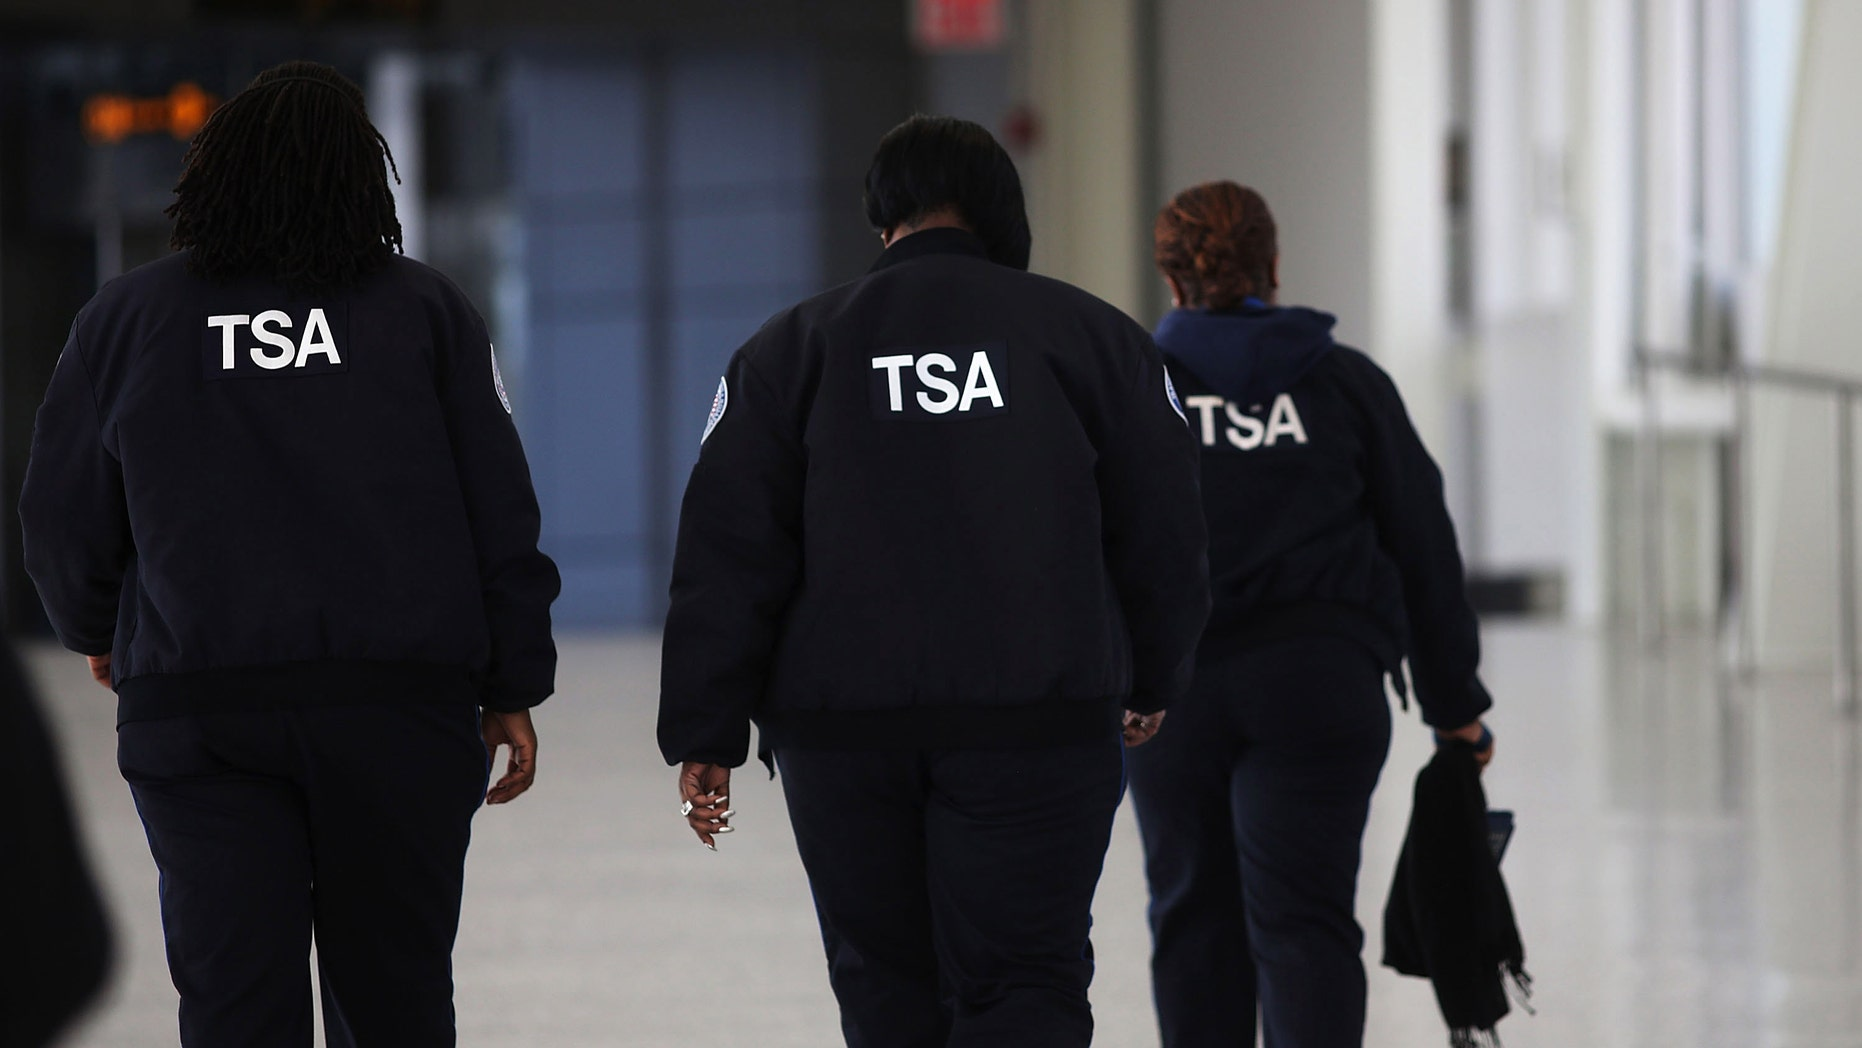 NEW YORK, NY - FEBRUARY 28:  Transportation Security Administration (TSA) workers walk through John F. Kennedy Airport on February 28, 2013 in New York City. Should the $85 billion in automatic federal budget cuts, known as the sequester, go into effect Friday as scheduled, airport control towers in a number of states could close, putting pilots and staff members at risk. In addition to the closed control towers, TSA workers could be furloughed, leading to long waits and confusion at many airport security checkpoints.  (Photo by Spencer Platt/Getty Images)